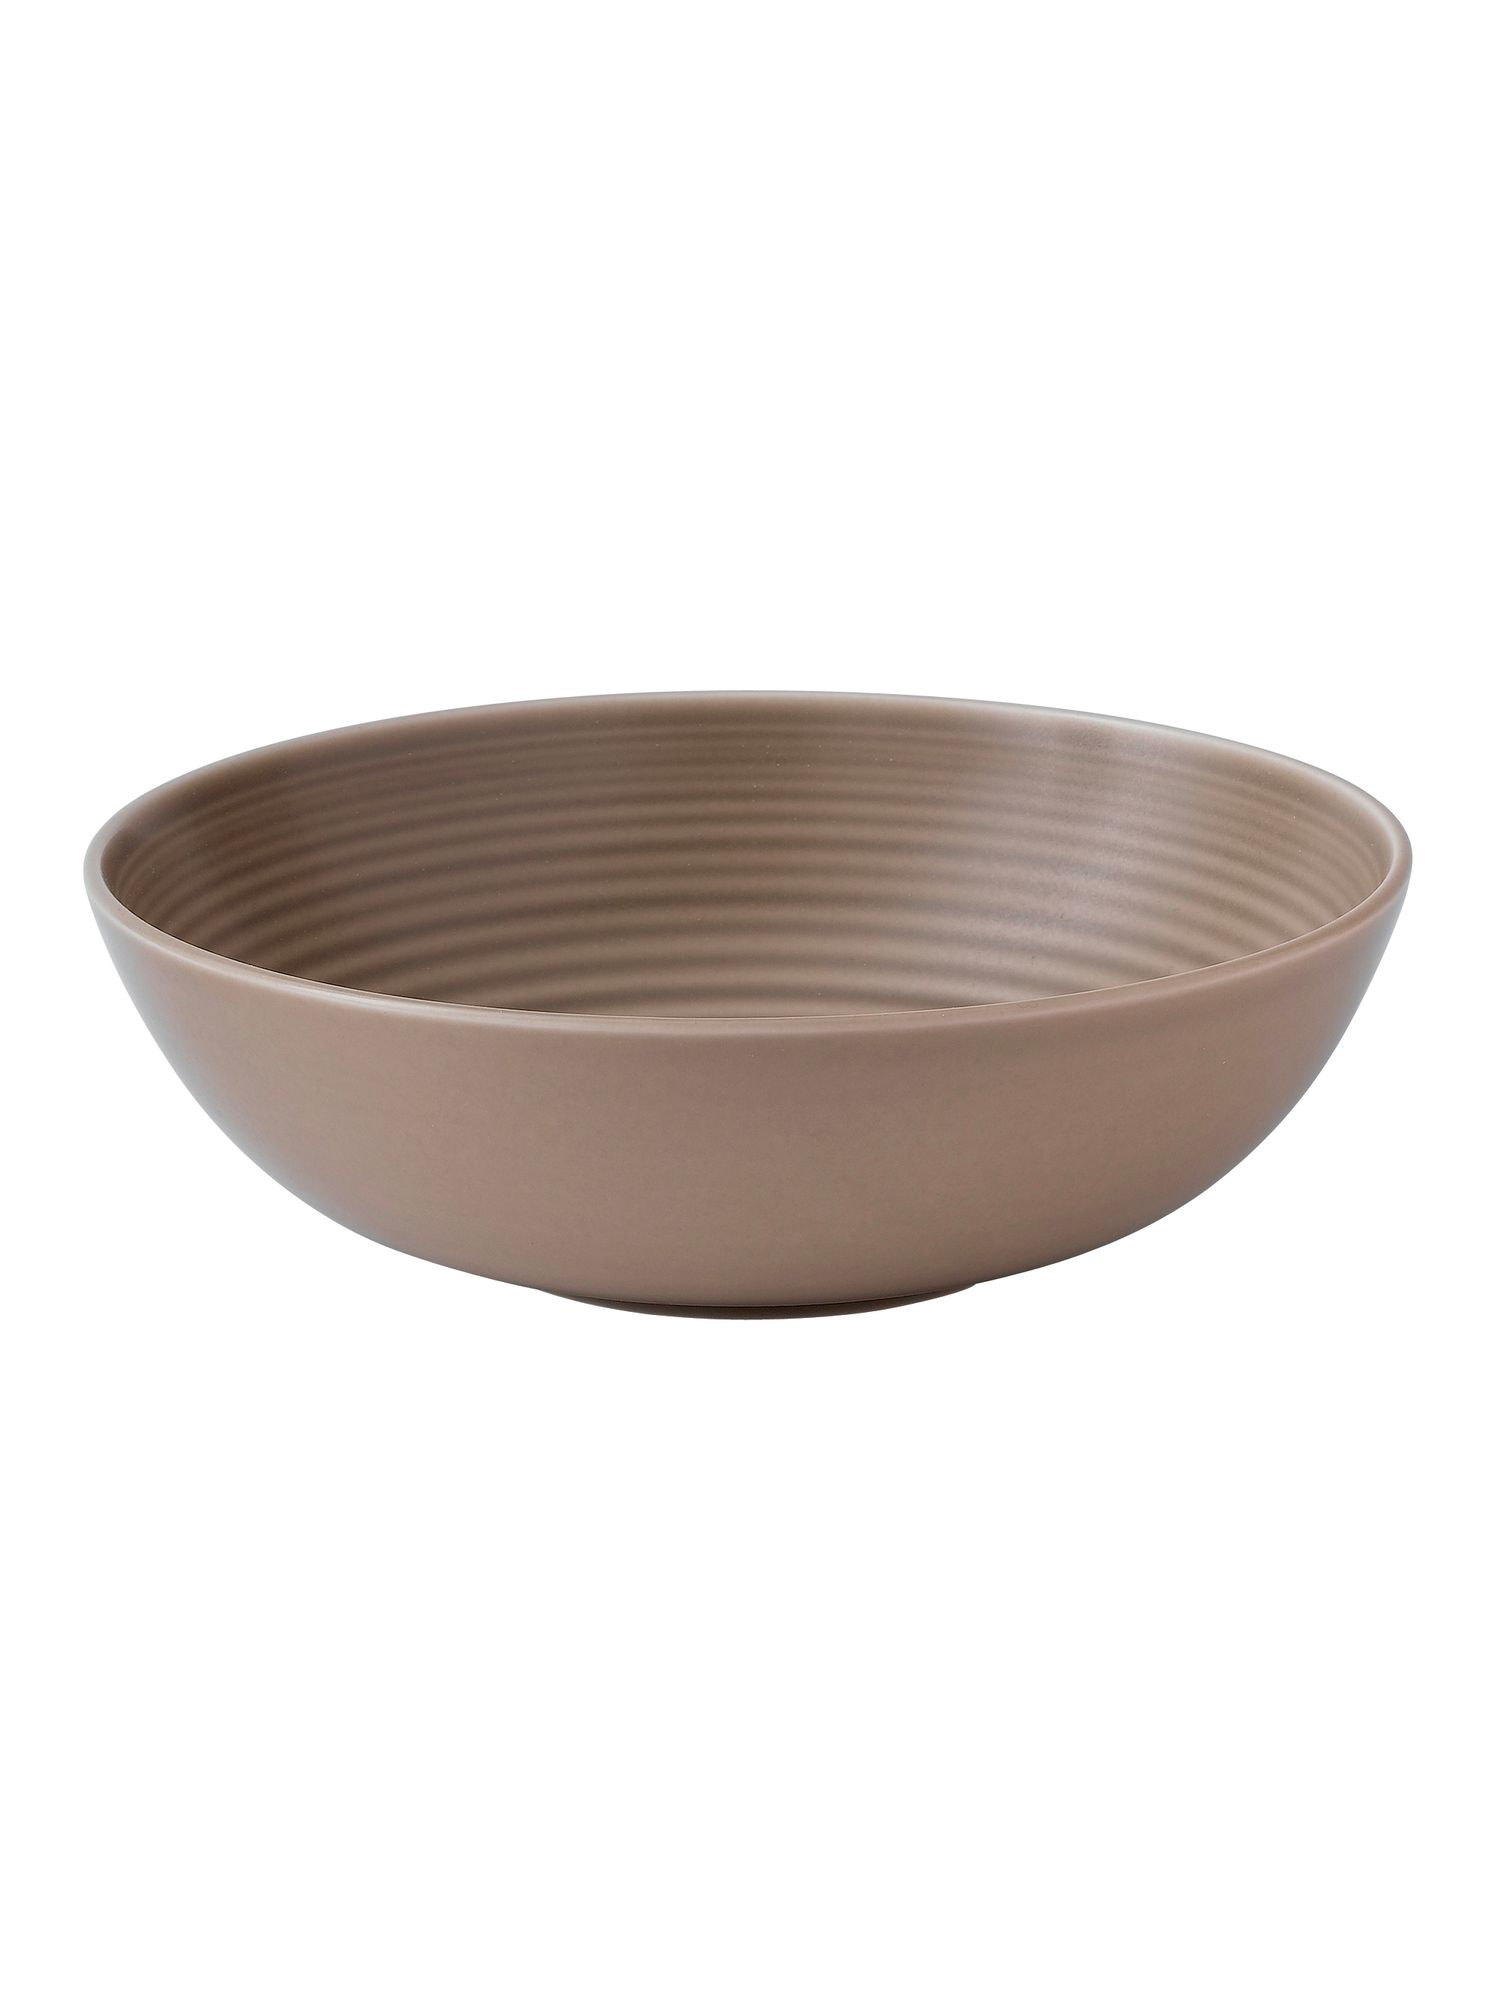 Gordon Ramsay maze taupe all purpose bowl